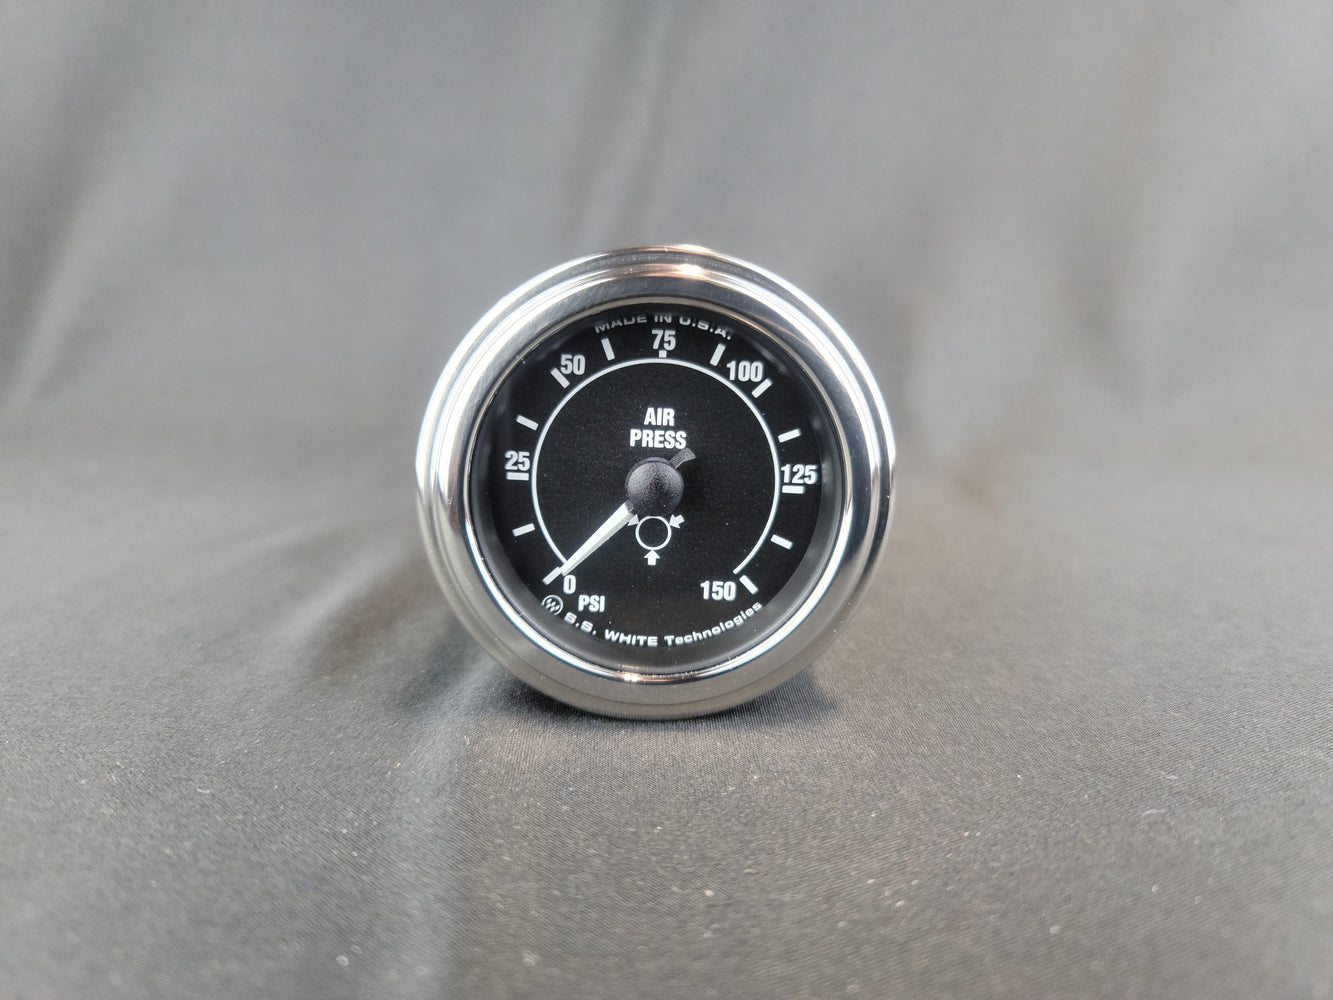 RECORD 2 Inch Air Pressure Gauge 0-150PSI - HG162